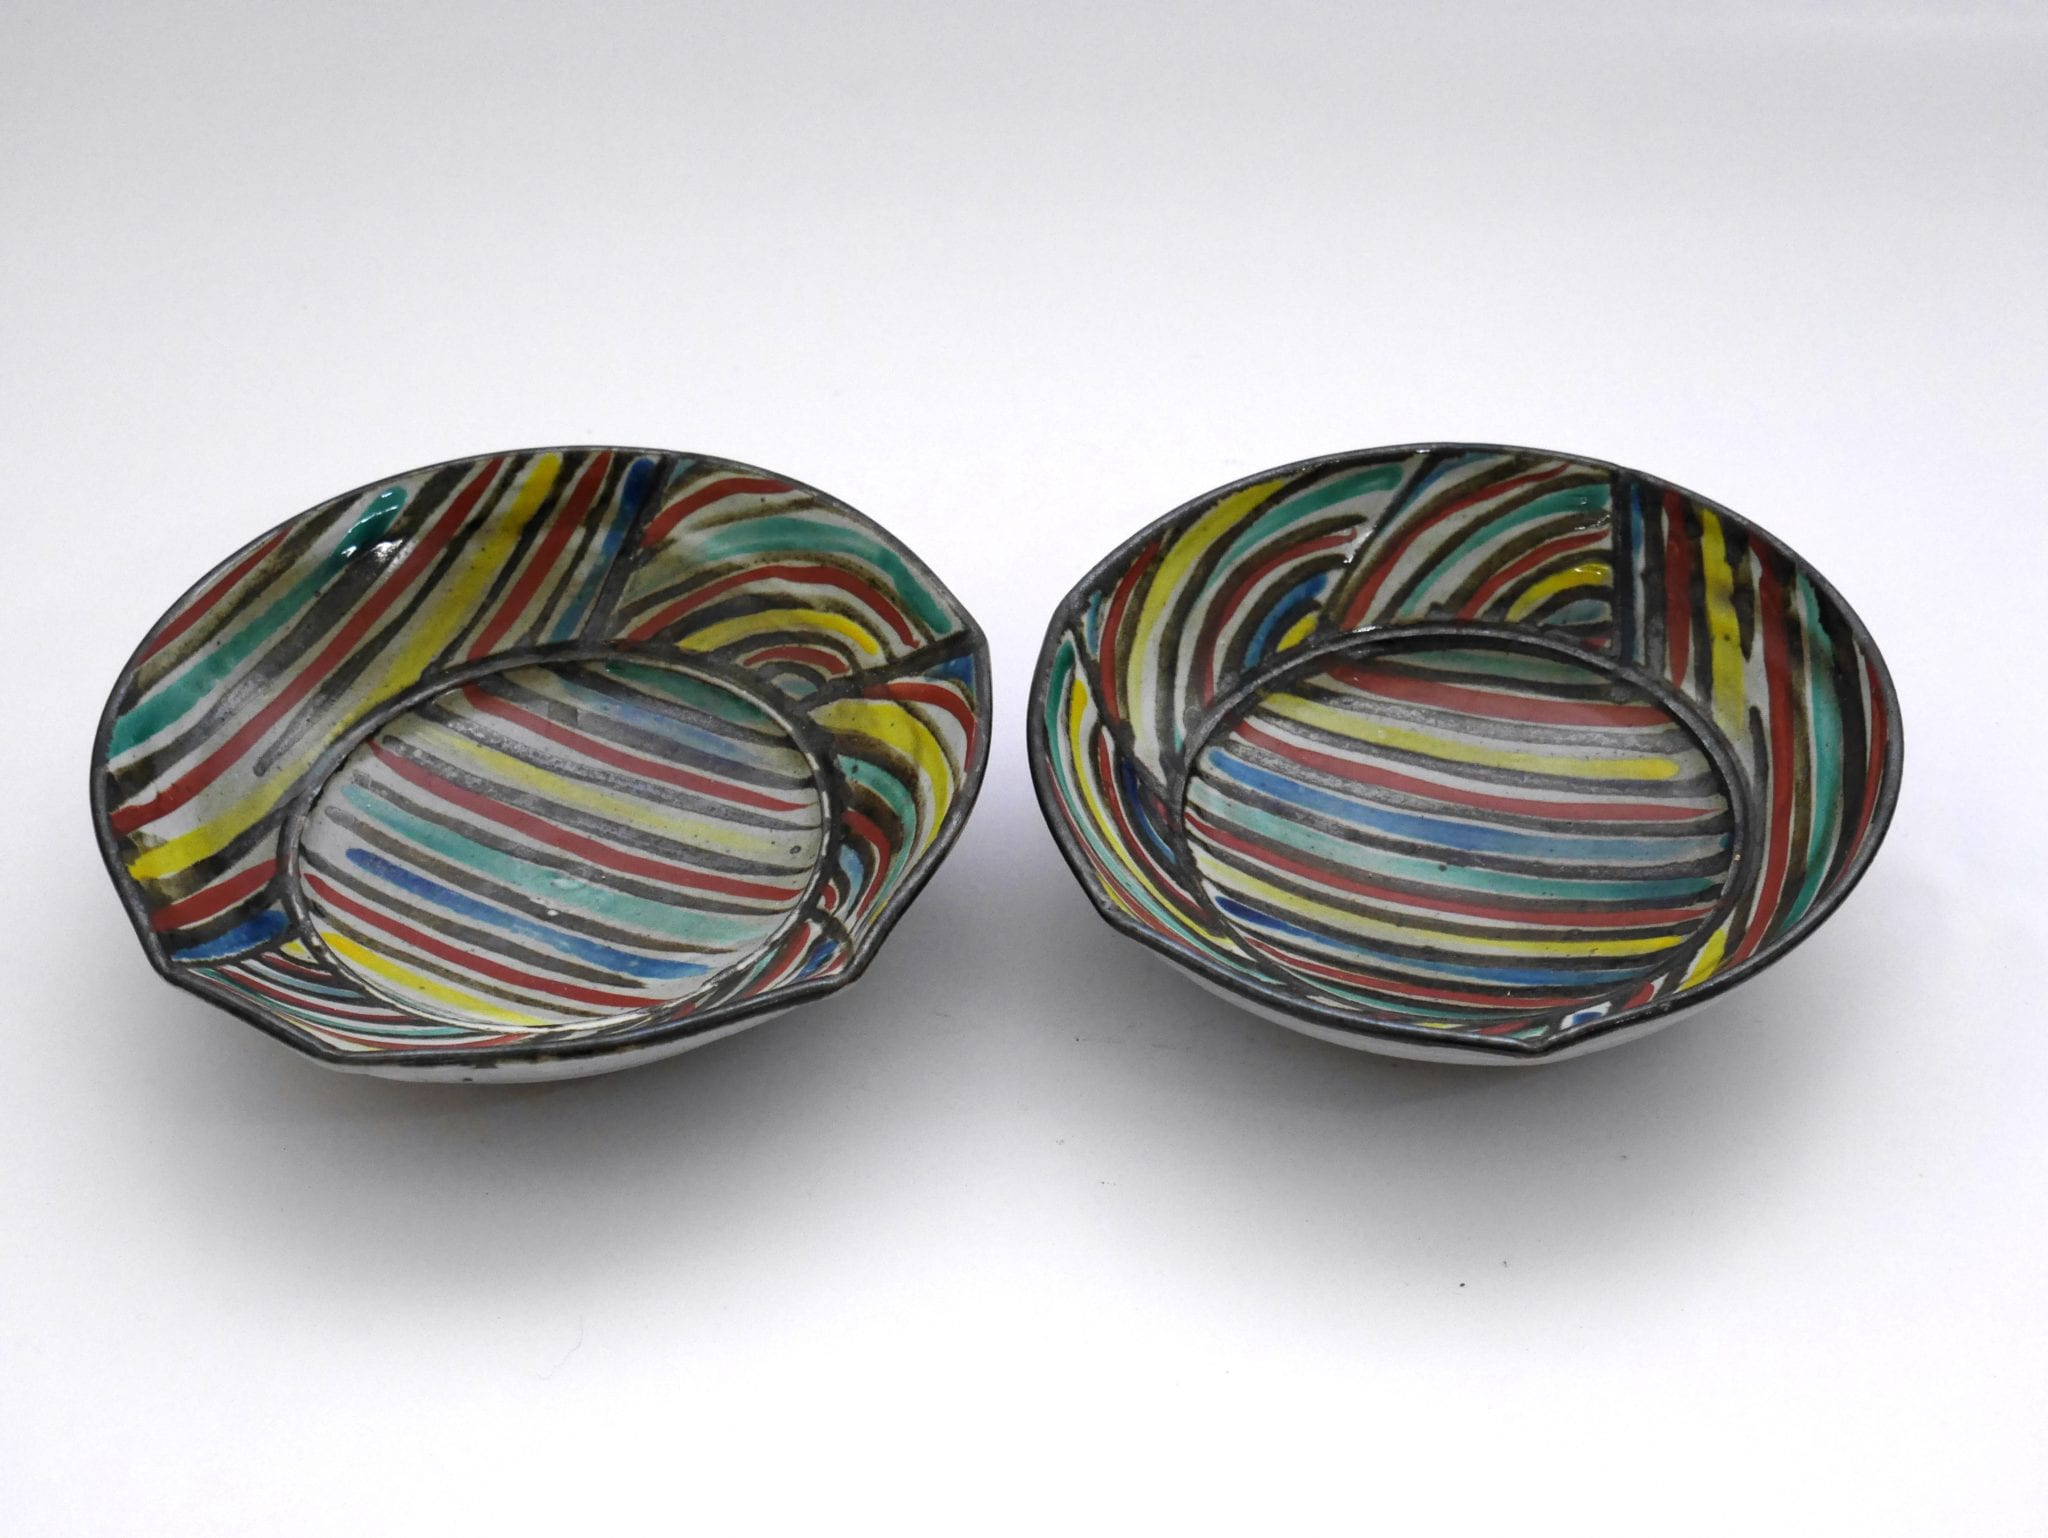 Kevin White, Two Dishes, 1980, ceramic, 4.5 x .17 cm. Courtesy the artist.